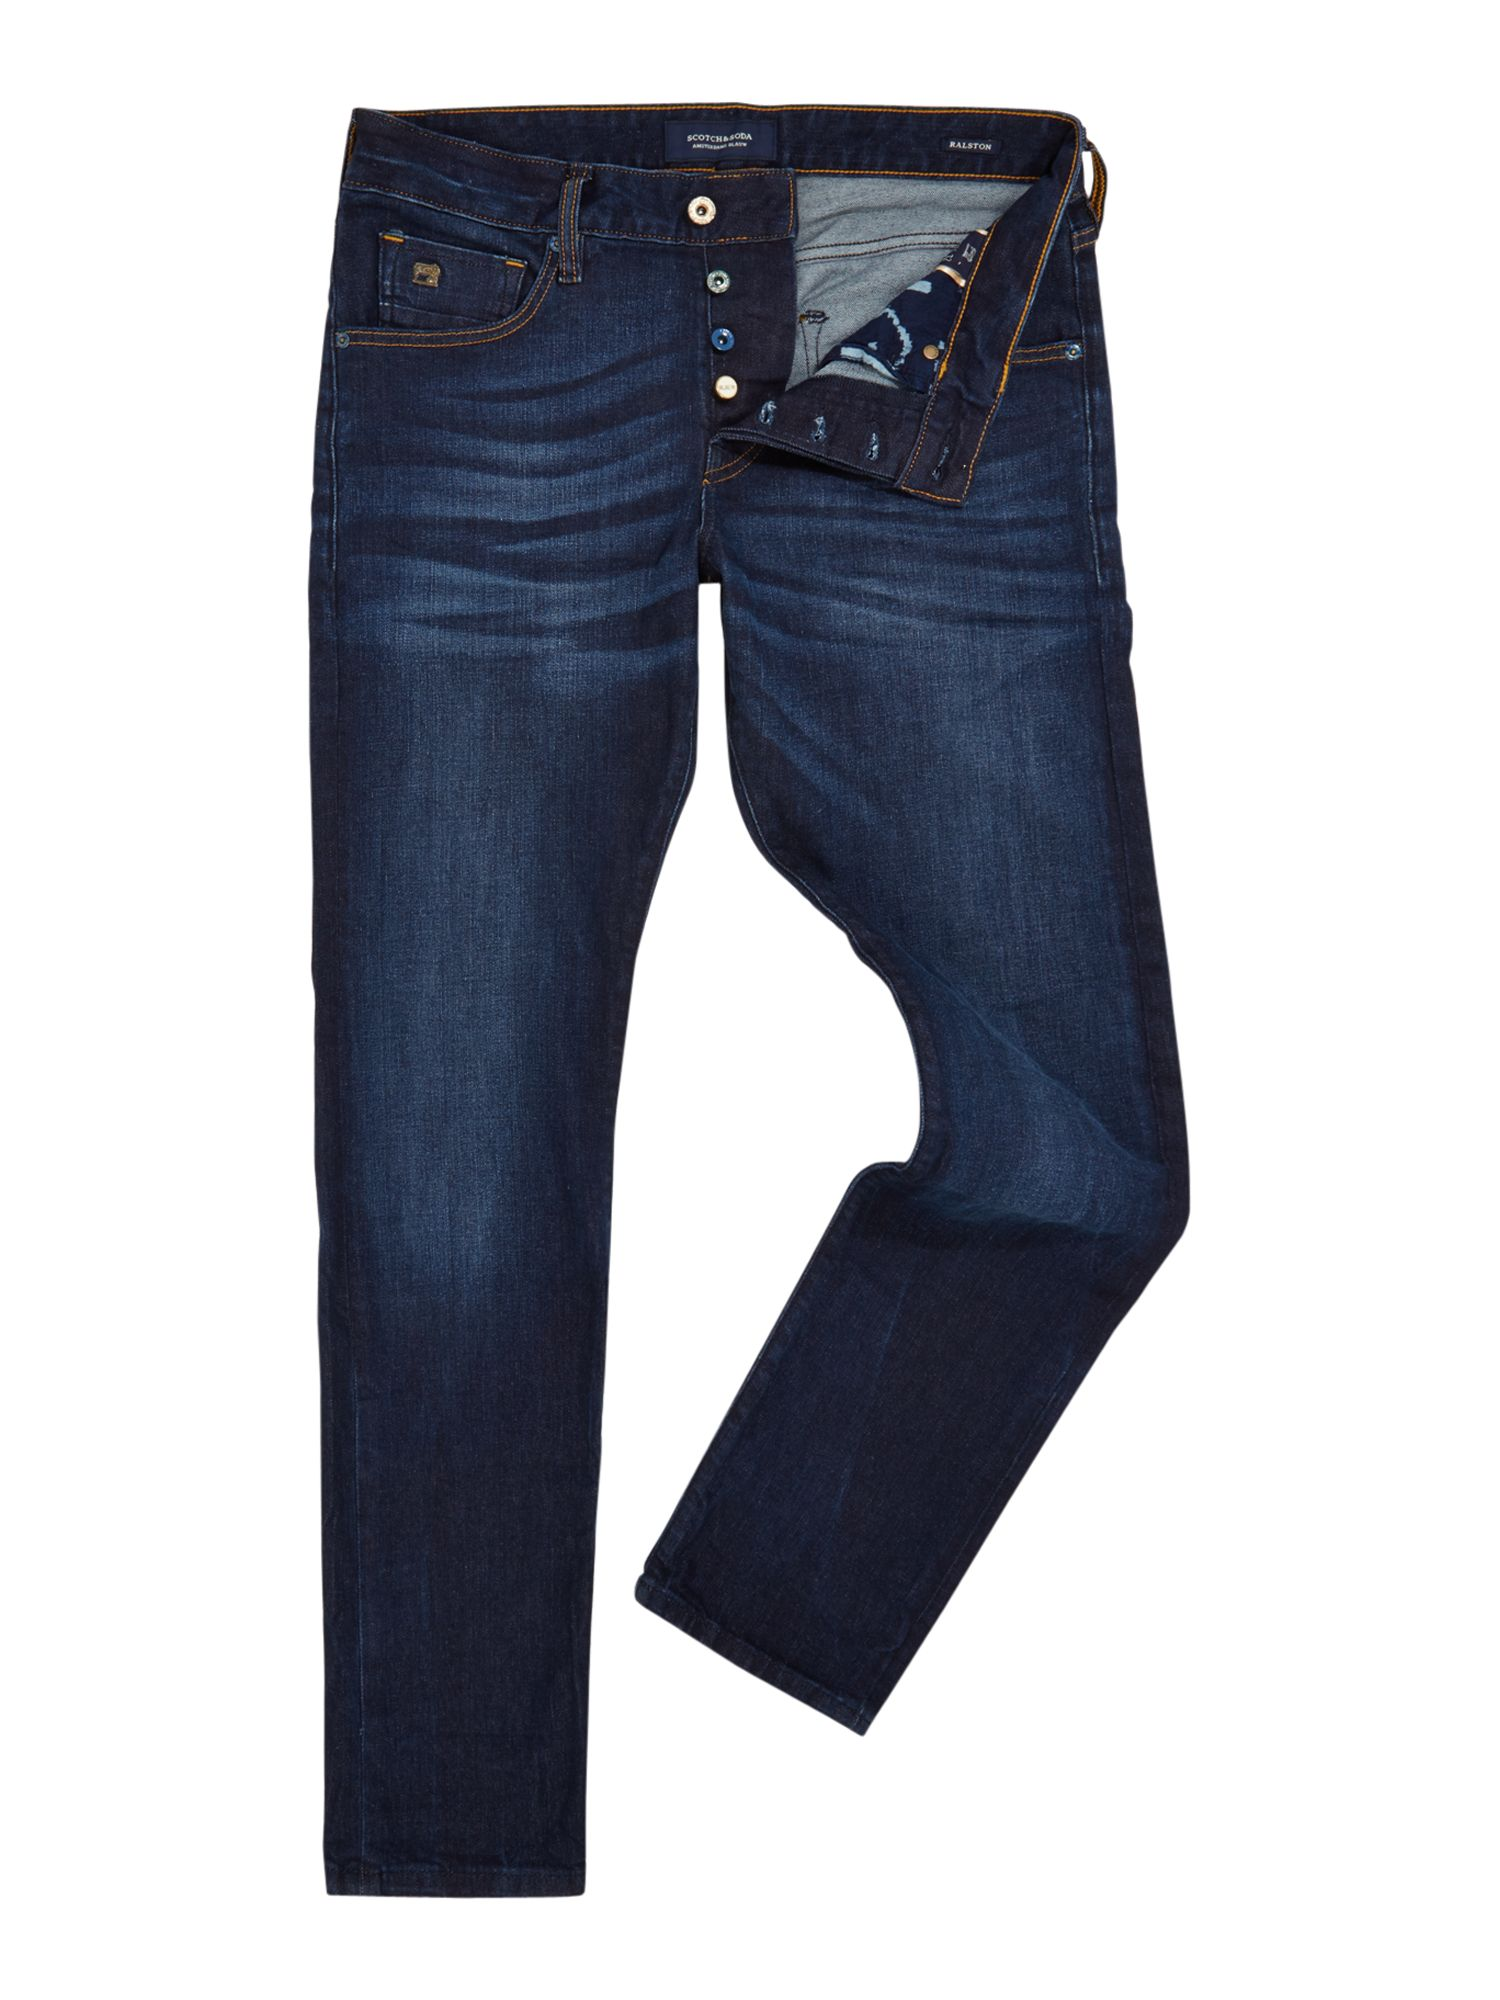 Mens Ralston Jeans  Black And Blue, Black & Blue